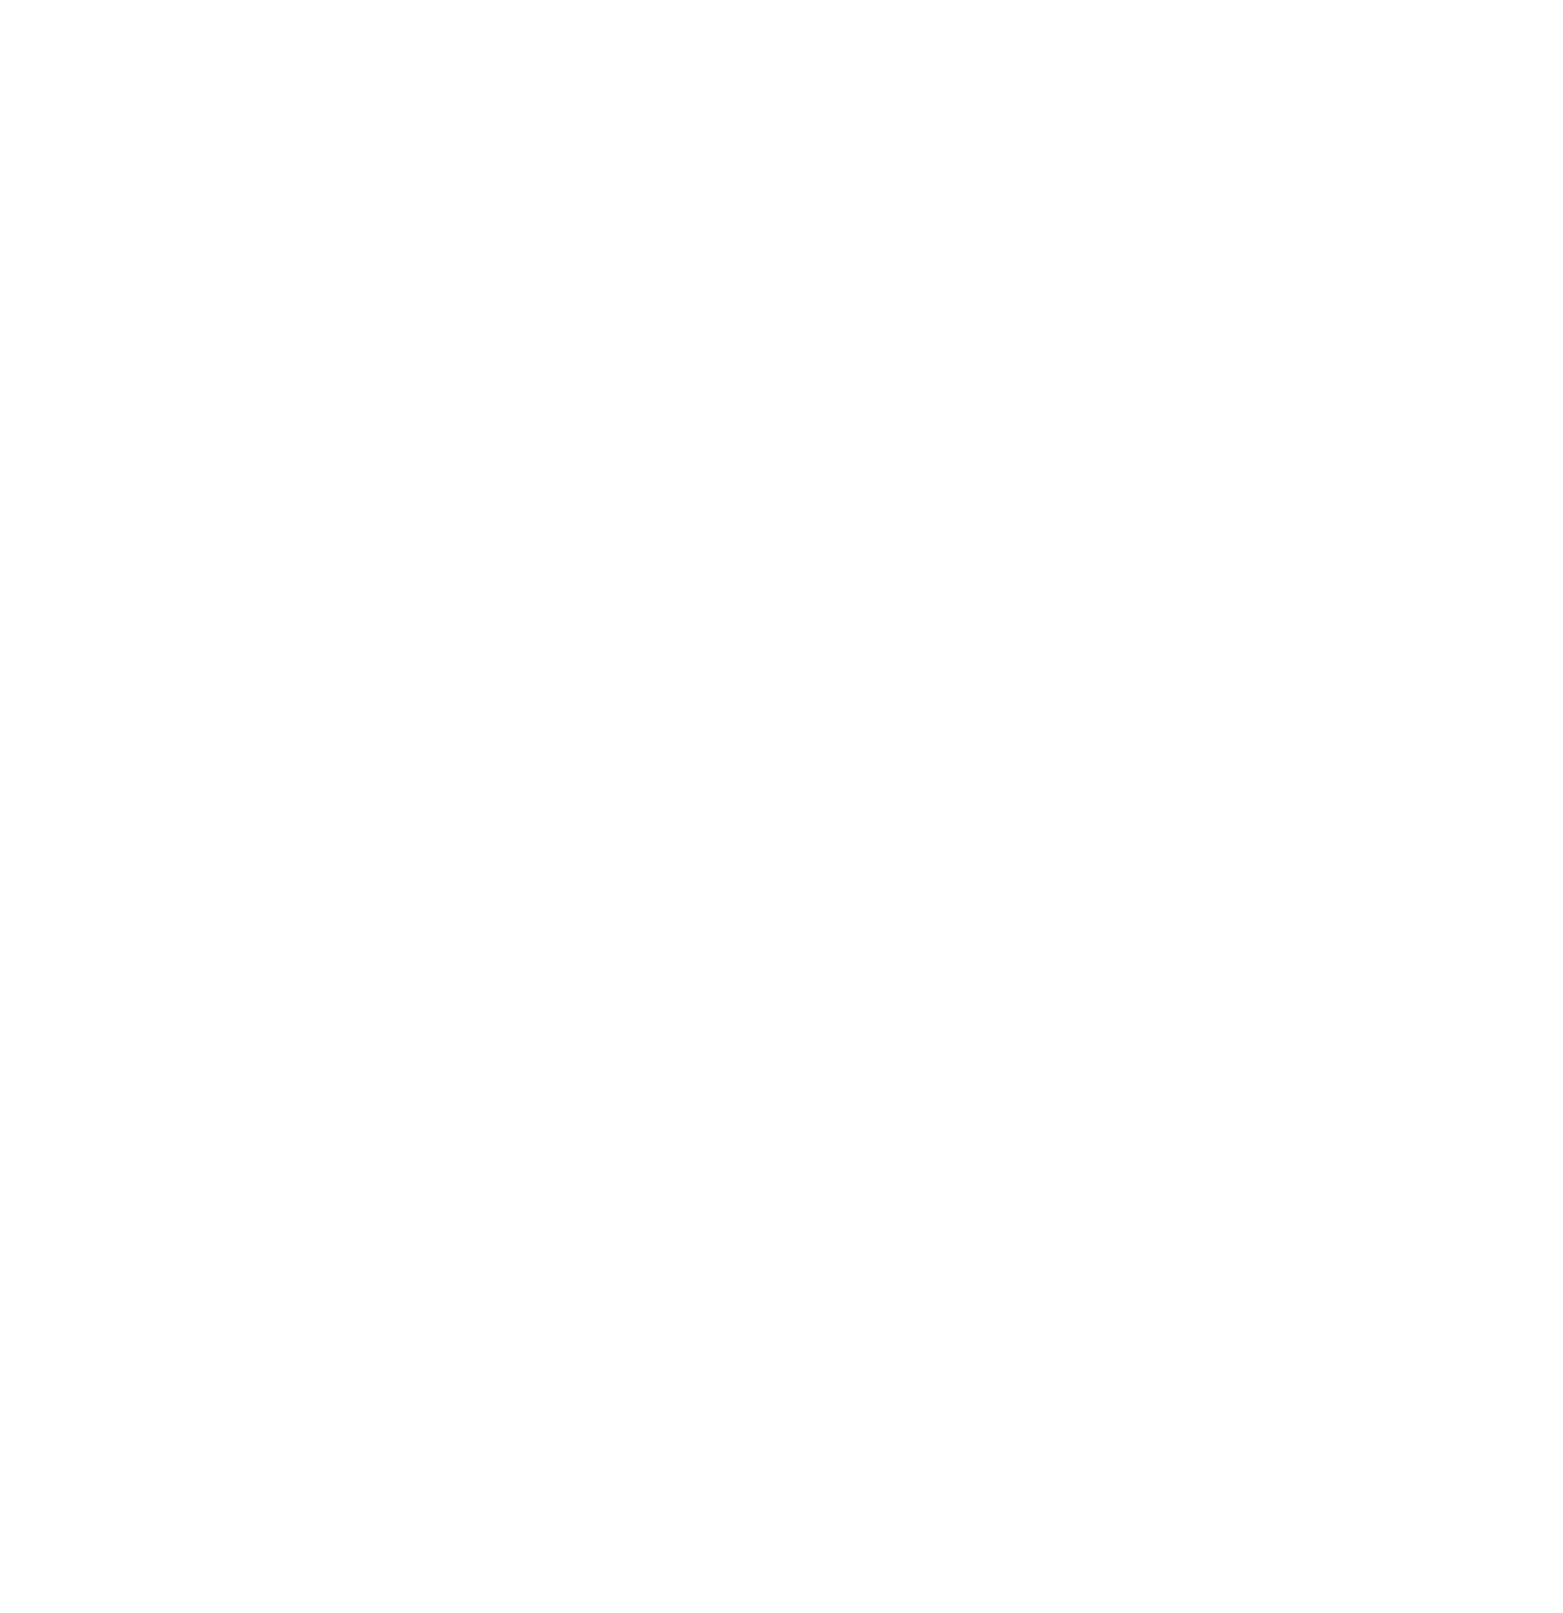 Credit Card - Great low rates on purchases and balance transfers. Keep that low rate until the balance is PAID in FULL!* Ends 12/31.